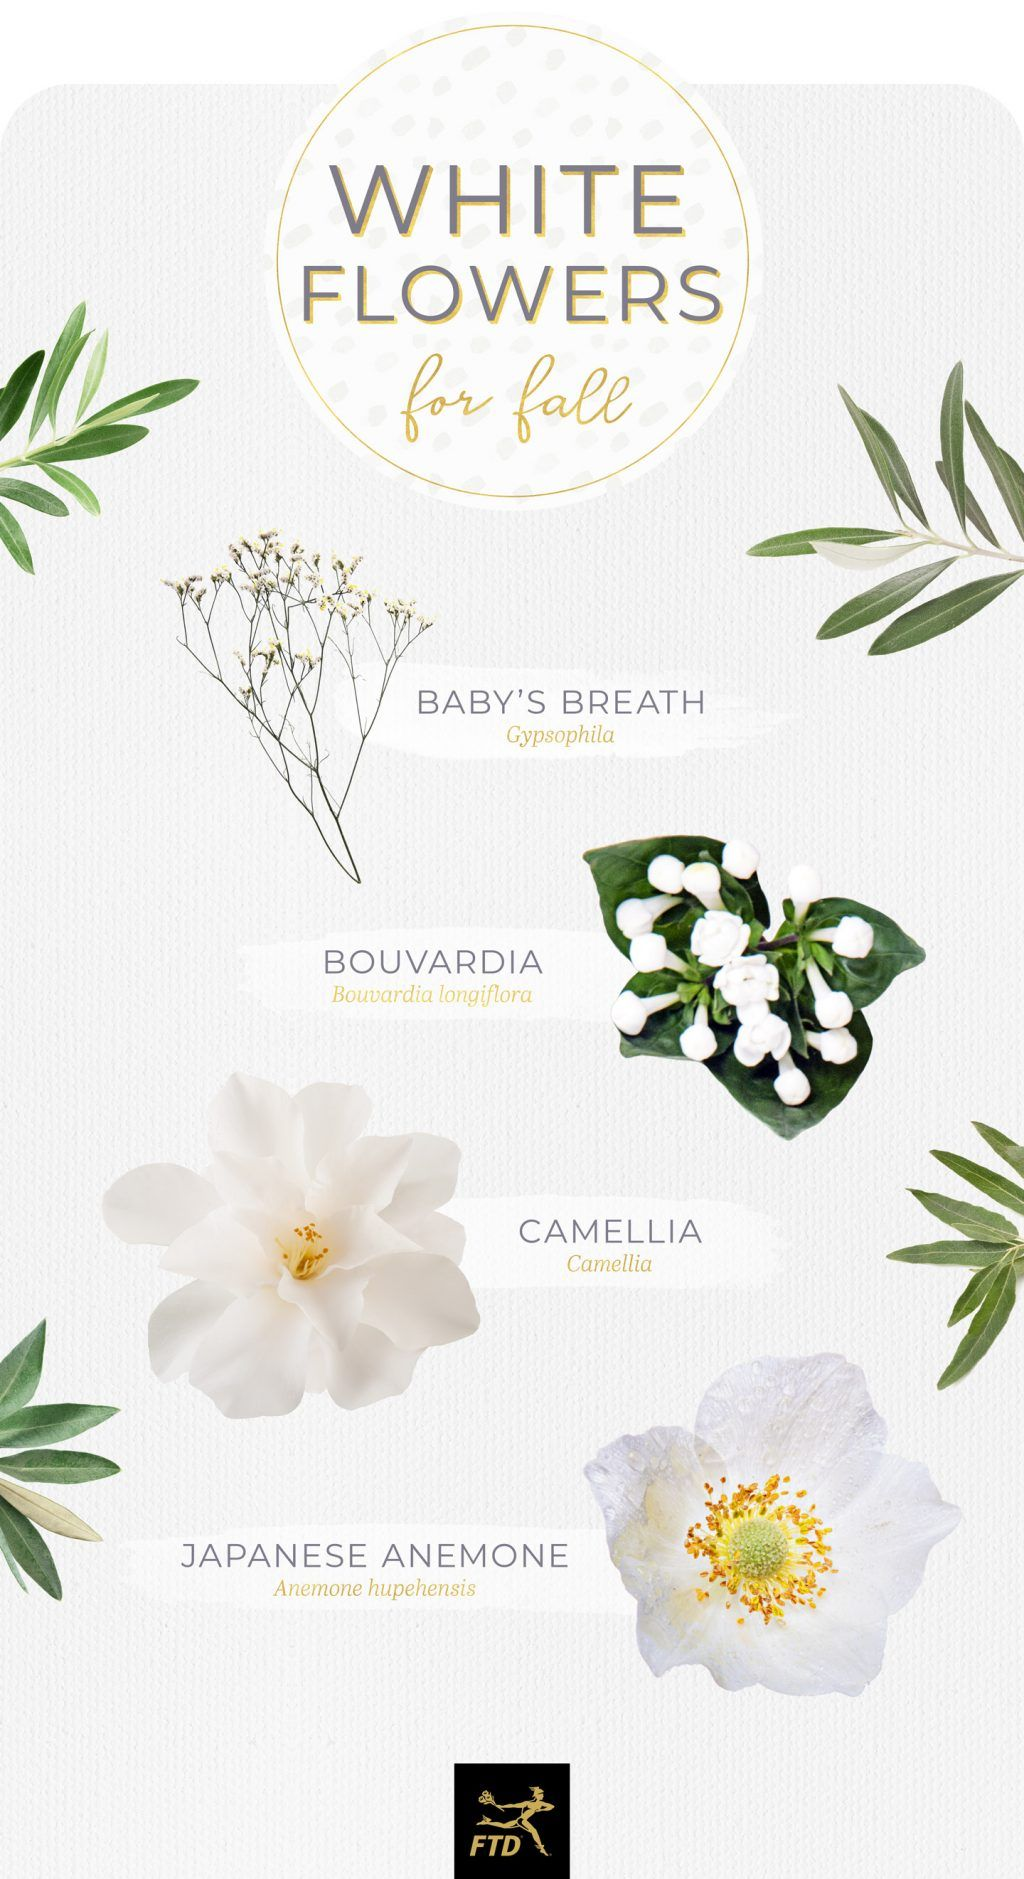 40 Types Of White Flowers Ftd Com In 2020 Types Of White Flowers White Flowers Names White Flowers